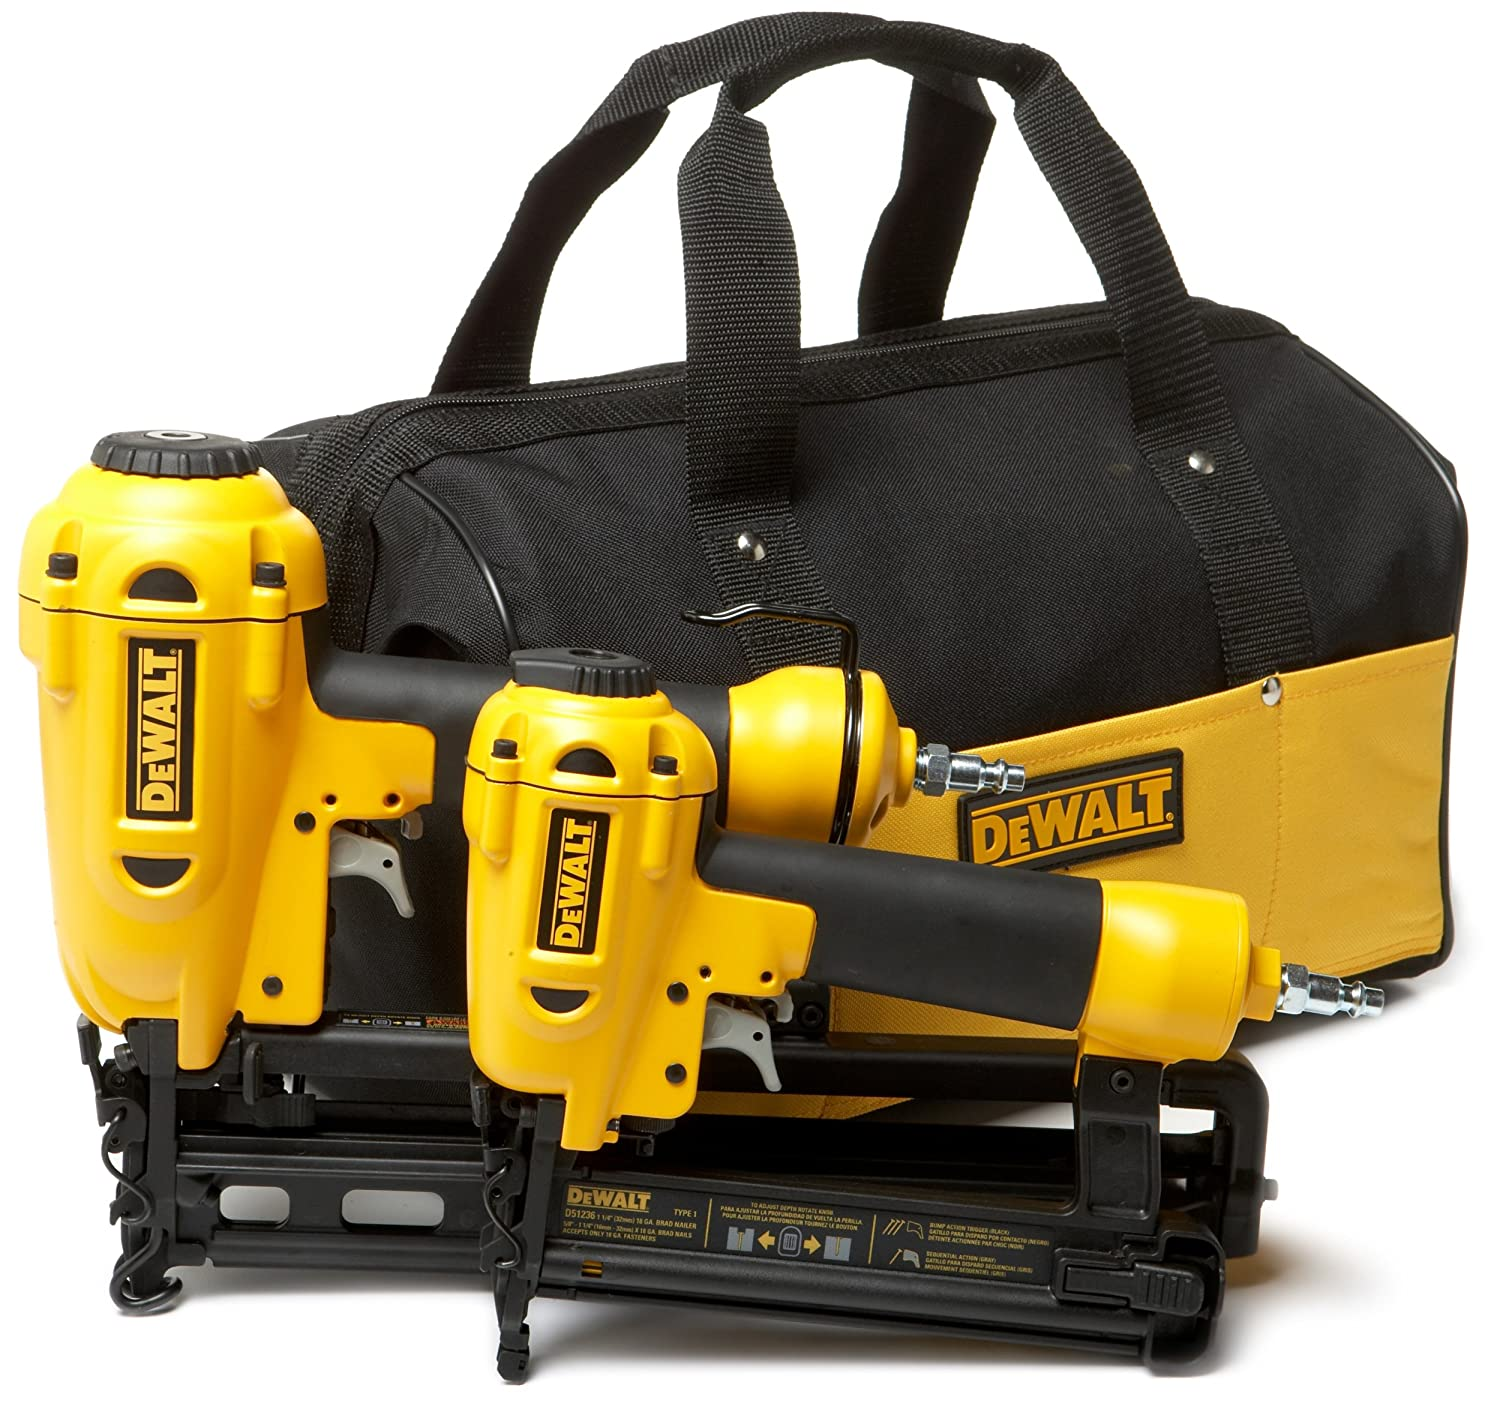 Amazon.com: DEWALT D55141FNBN 16-Gauge Finish Nailer/18-Gauge Brad ...